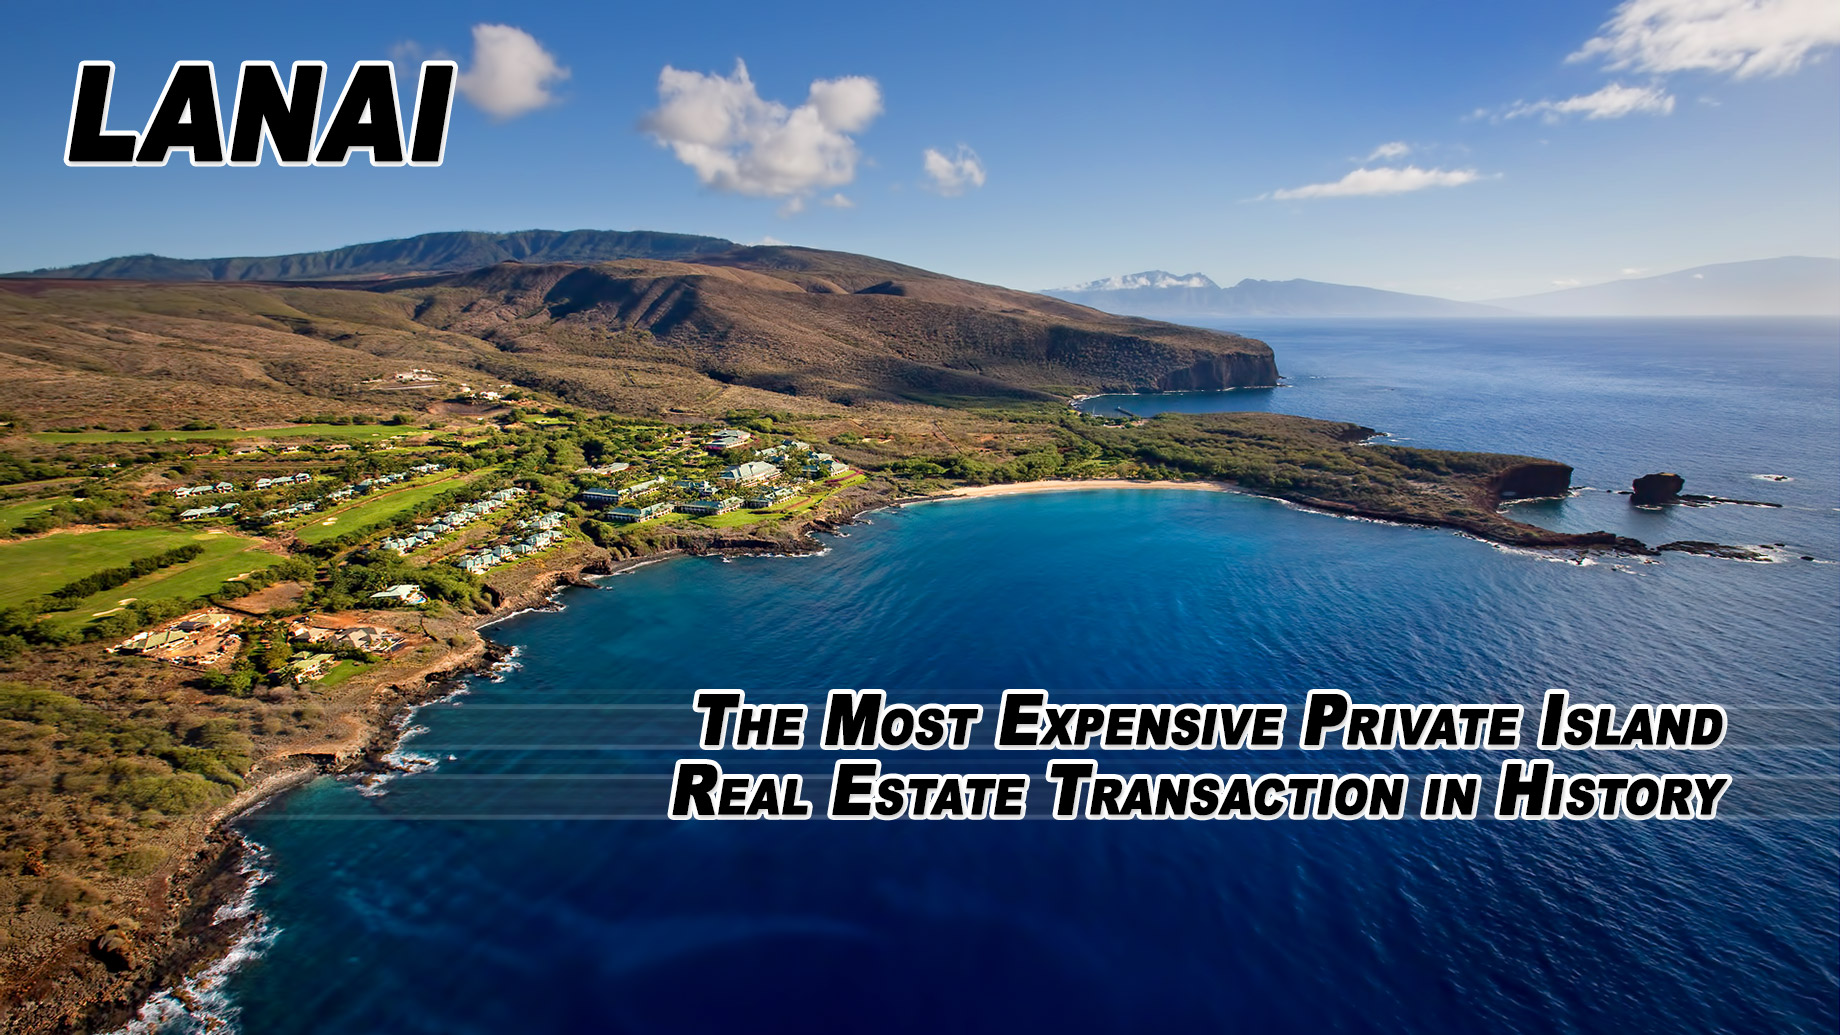 Lanai - The Most Expensive Private Island Real Estate Transaction in History